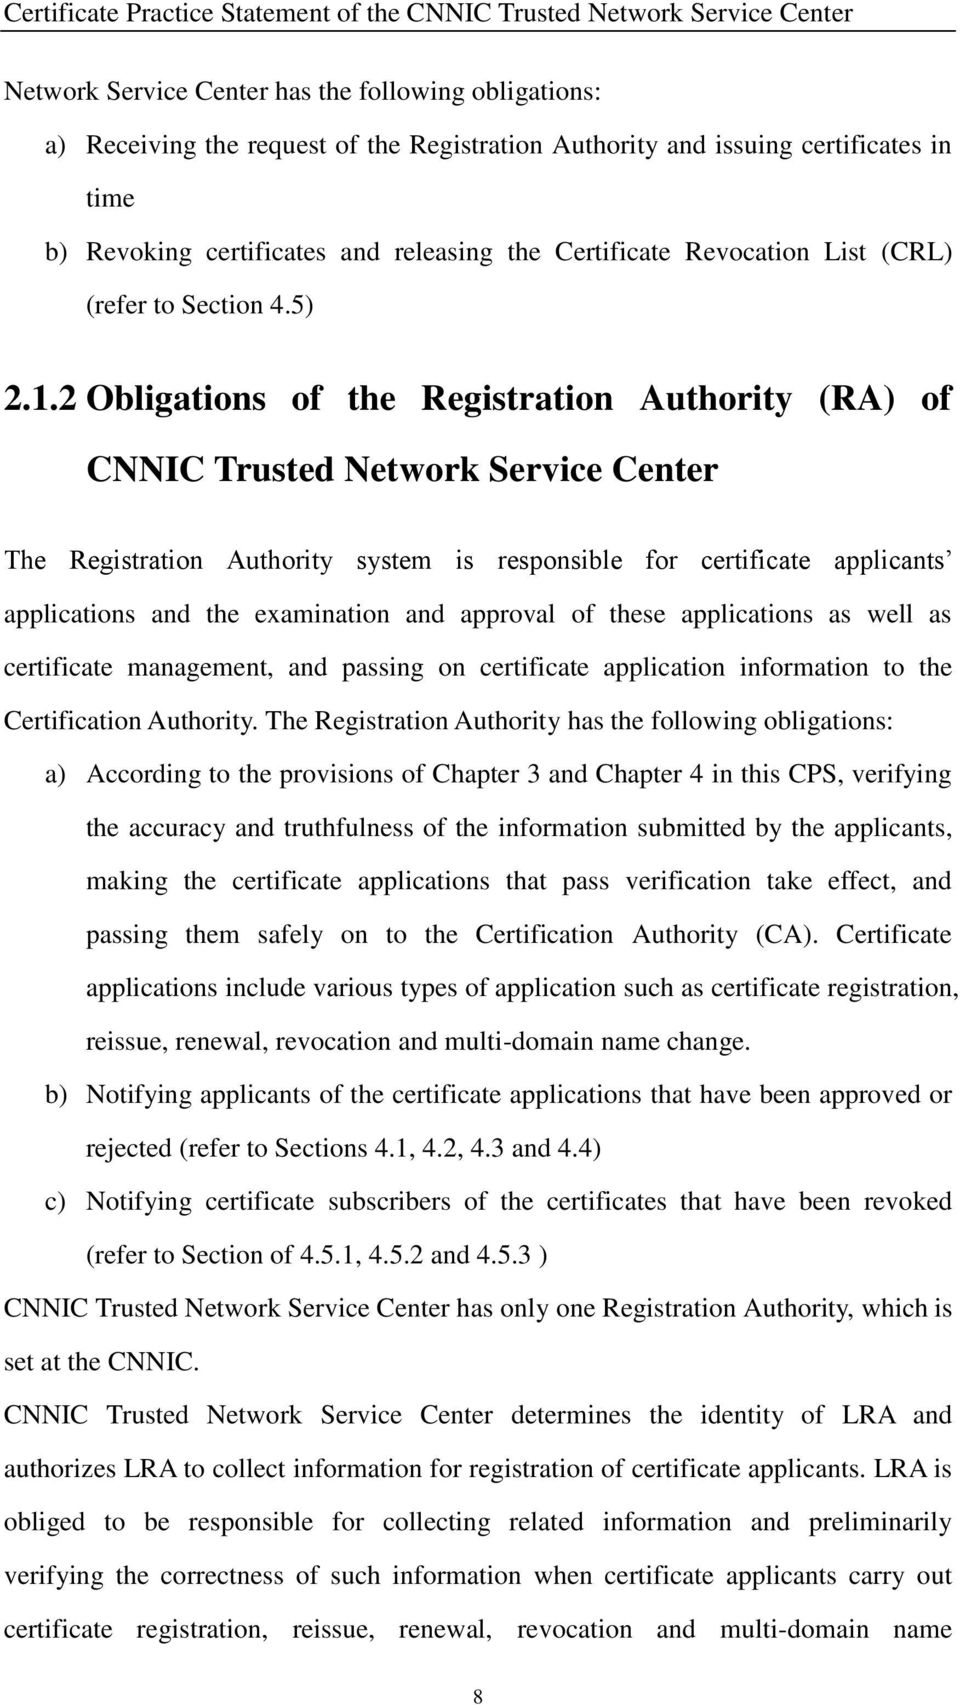 2 Obligations of the Registration Authority (RA) of CNNIC Trusted Network Service Center The Registration Authority system is responsible for certificate applicants applications and the examination